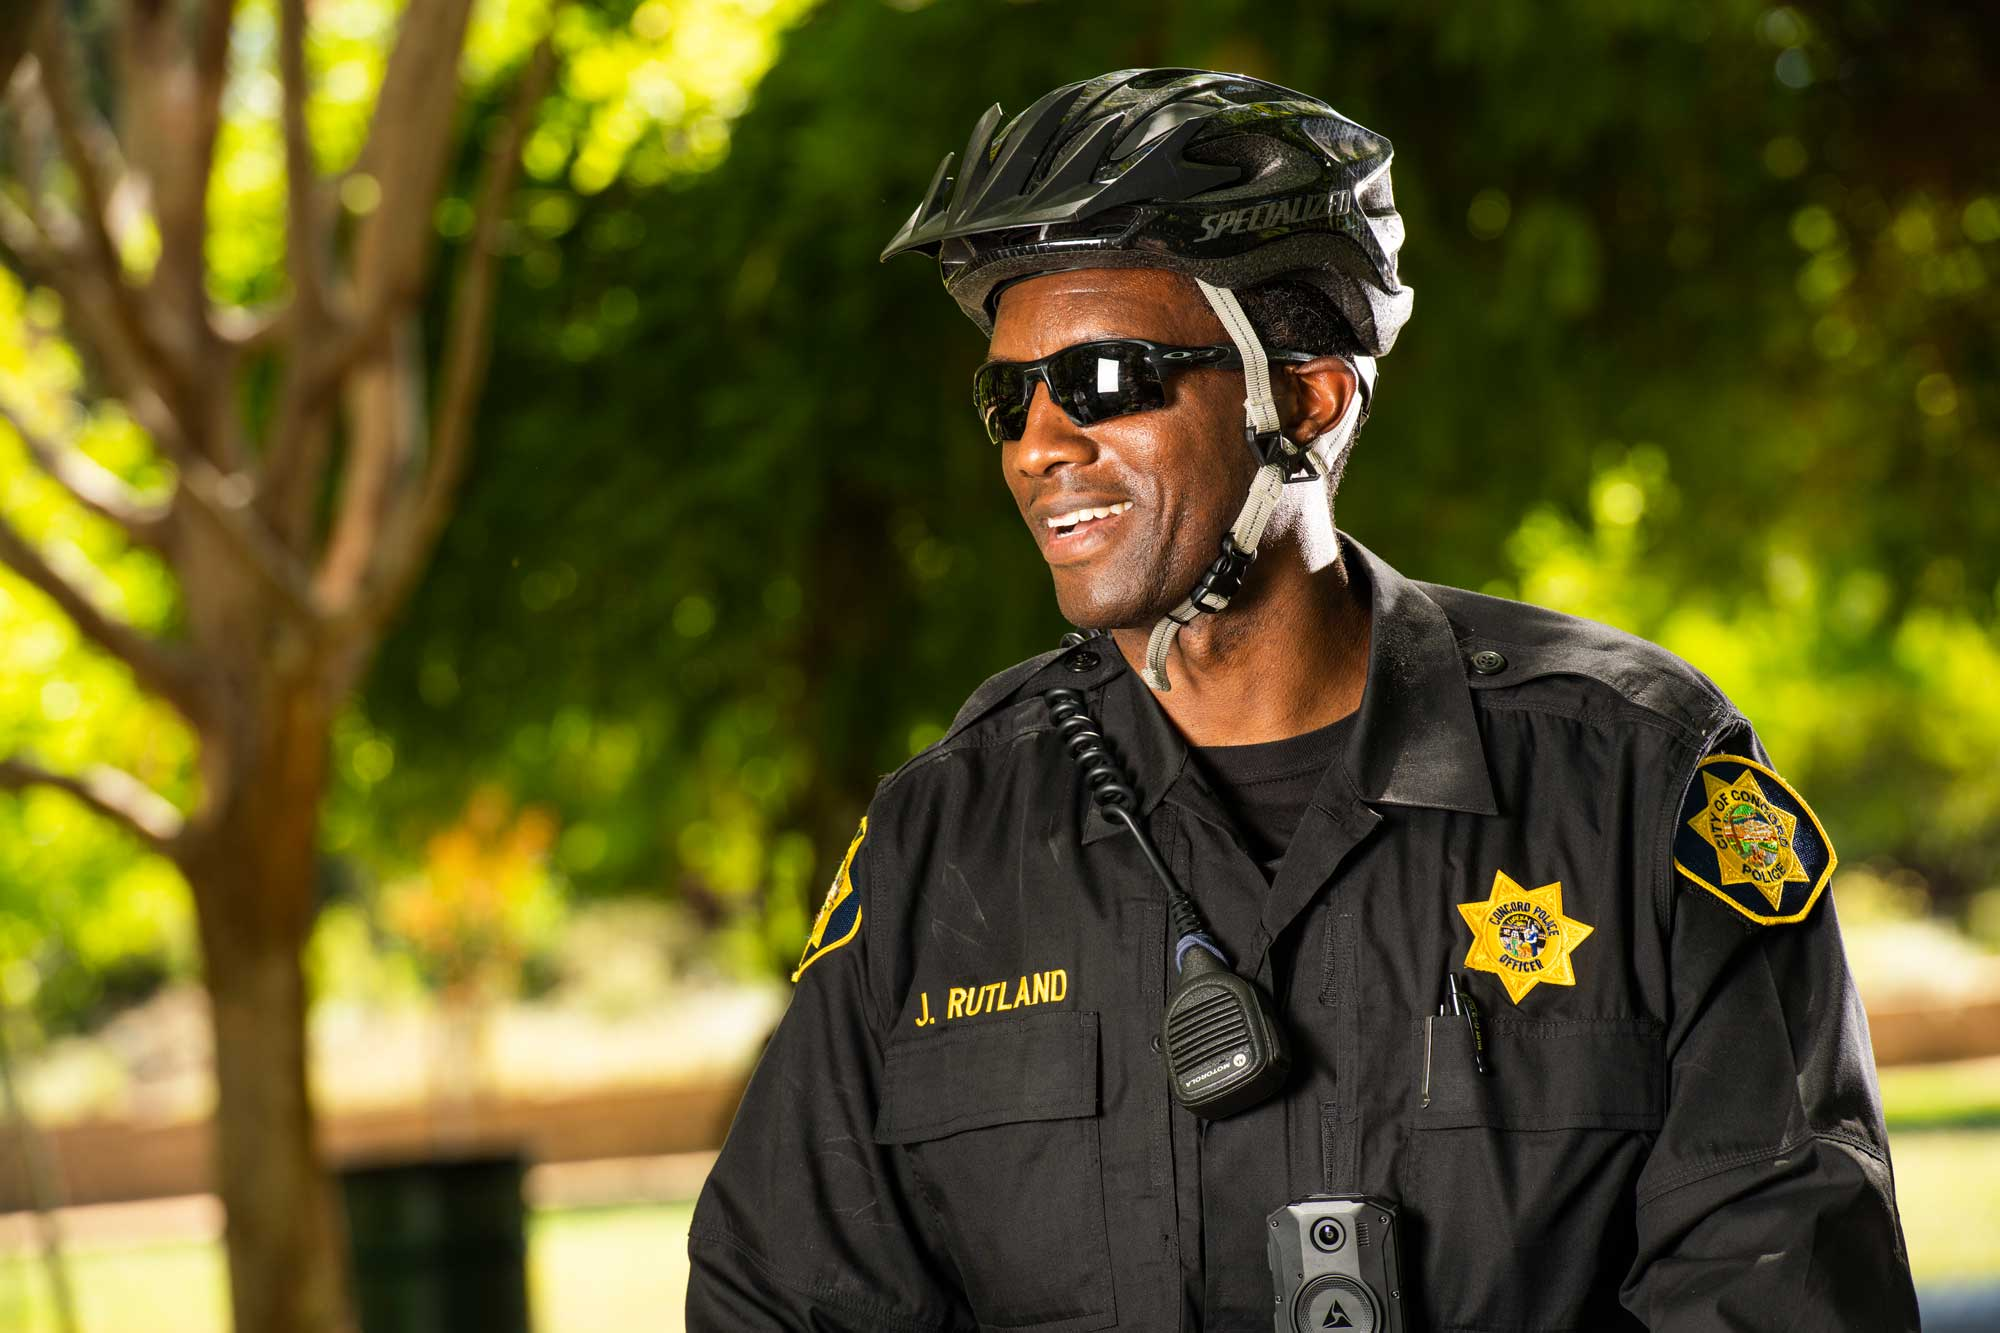 Uniformed police officer outside wearing sunglasses and helmet